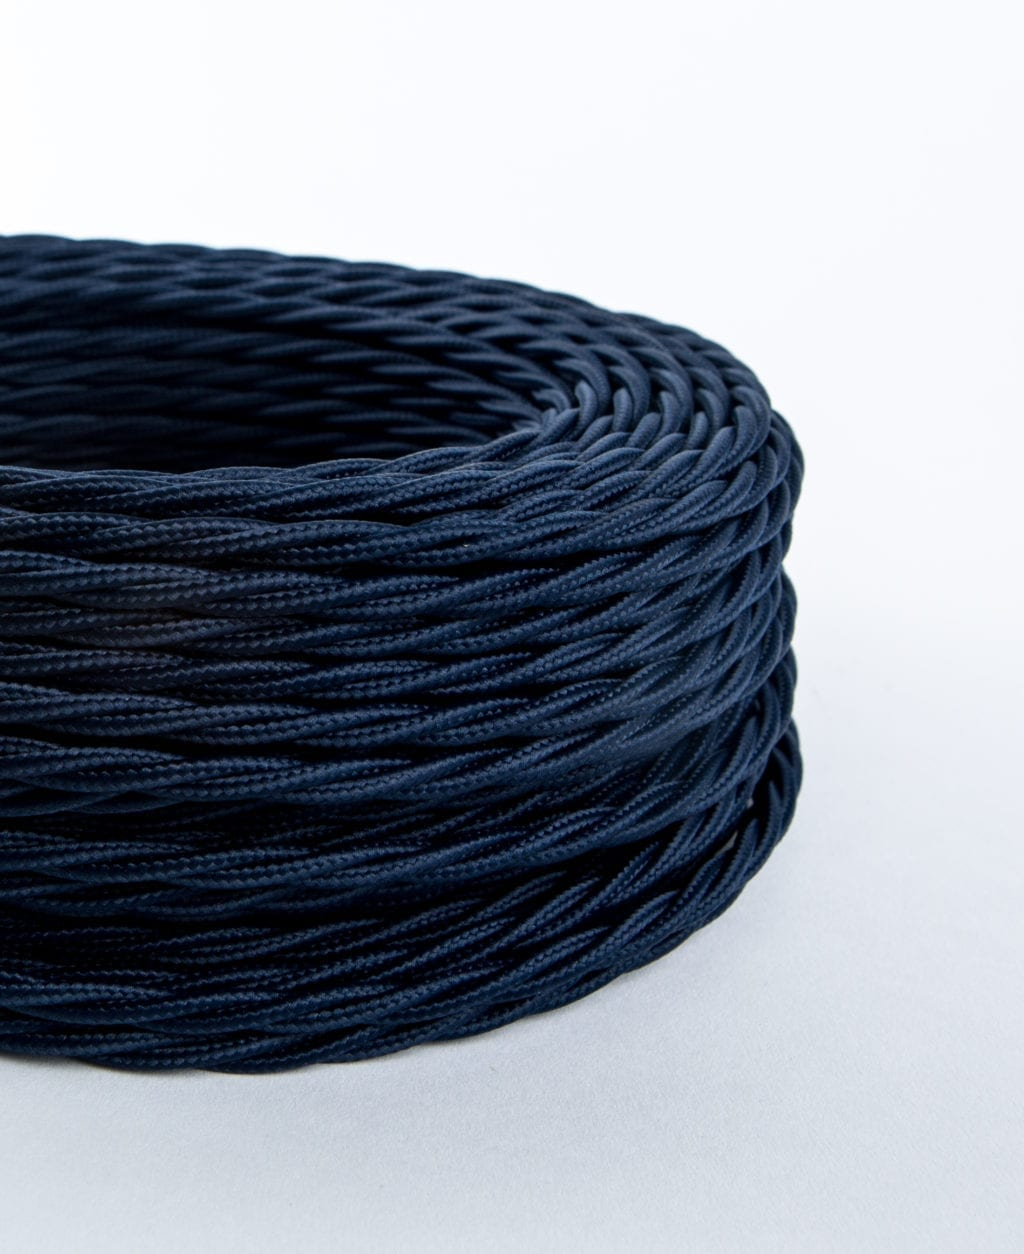 closeup of navy blue twisted fabric cable against white background